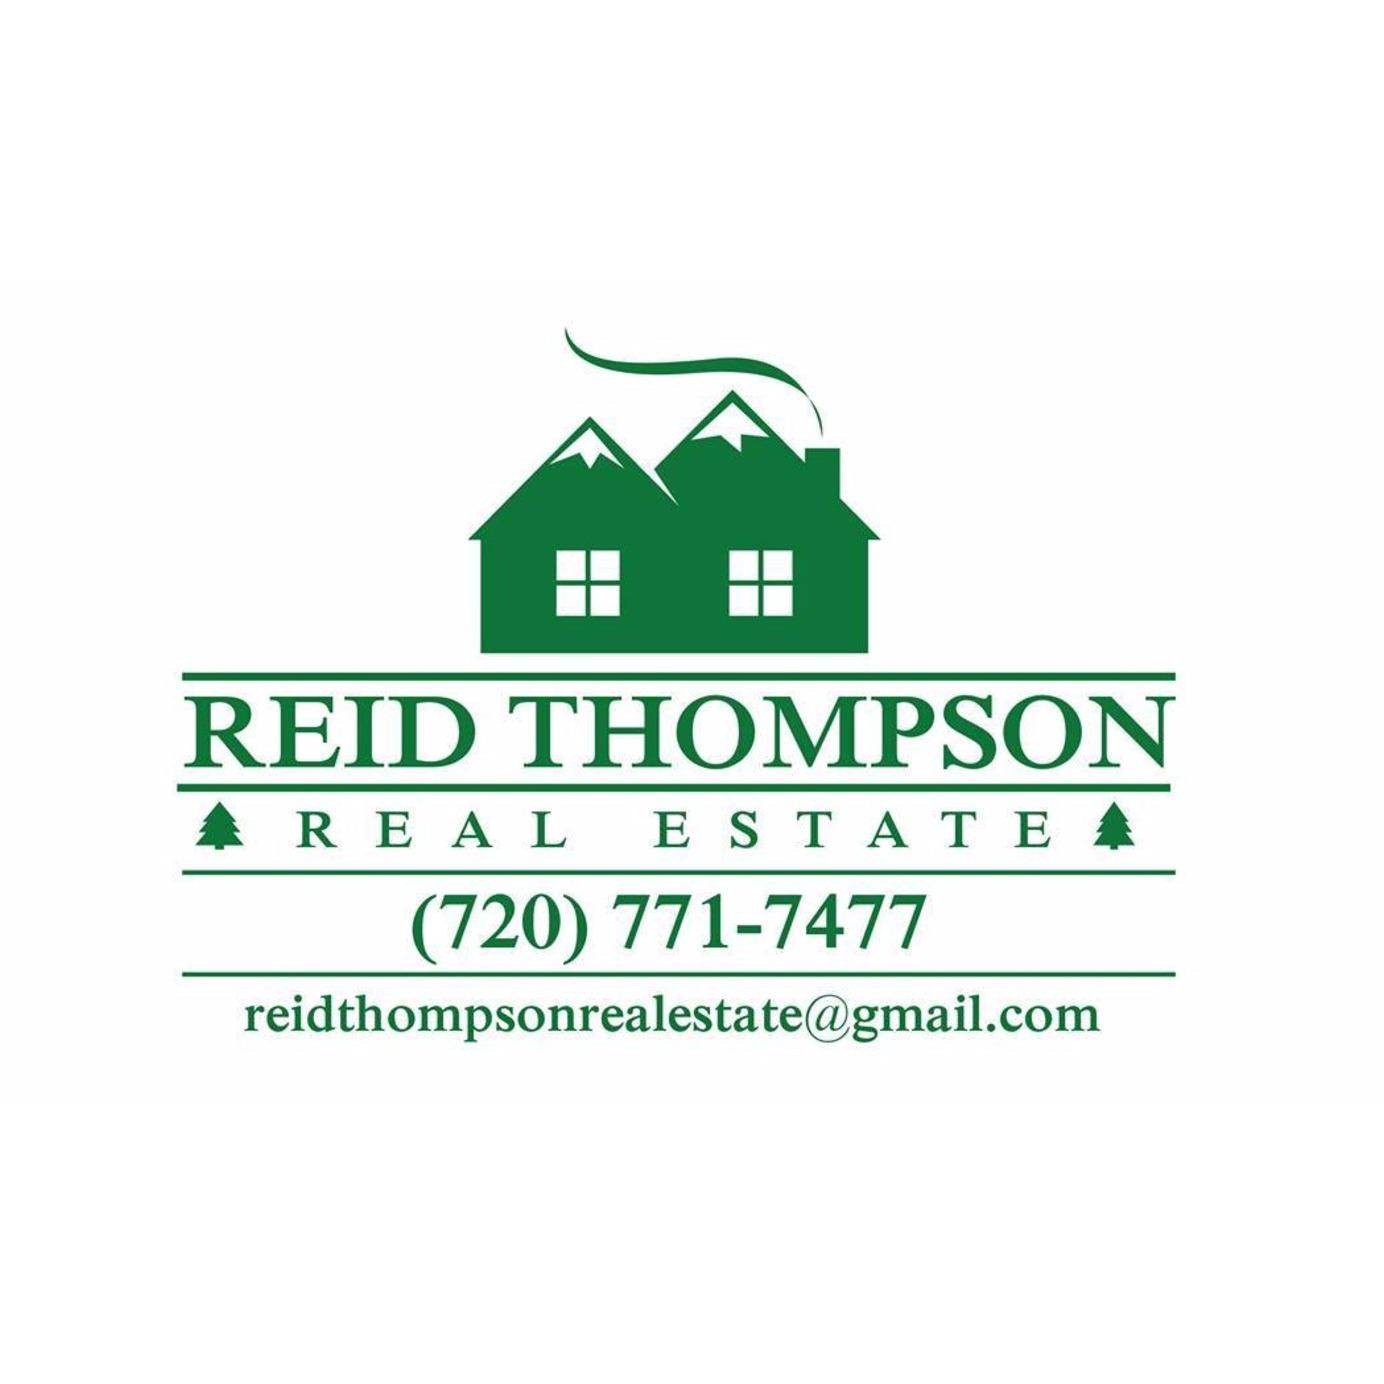 Reid Thompson | RE/MAX ALLIANCE EVERGREEN - Evergreen, CO 80439 - (720)771-7477 | ShowMeLocal.com